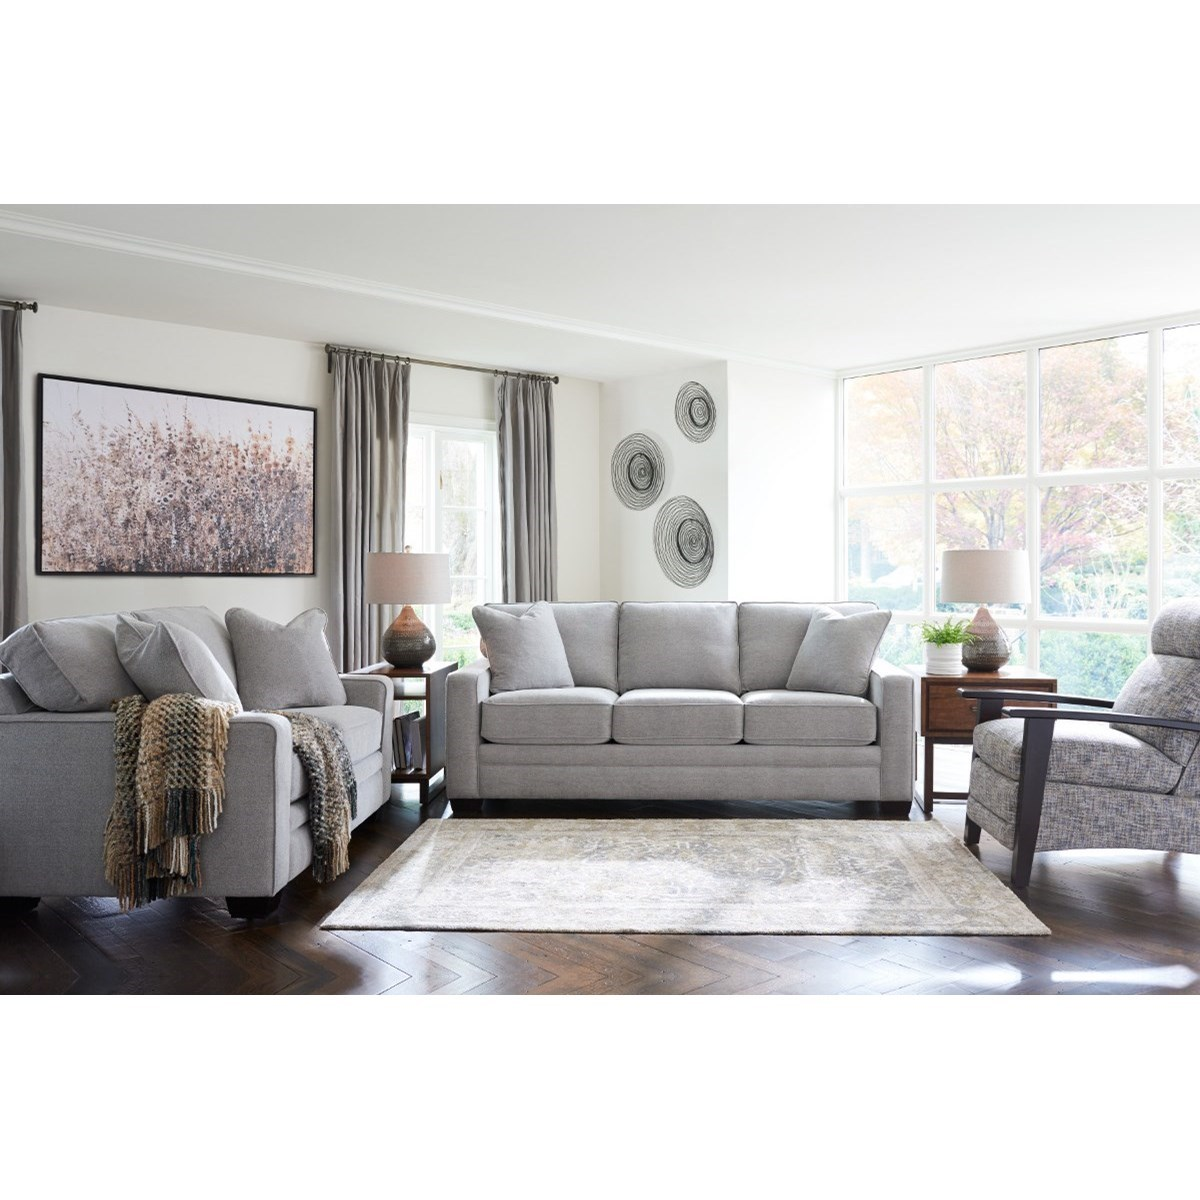 Meyer Living Room Group by La-Z-Boy at Home Furnishings Direct